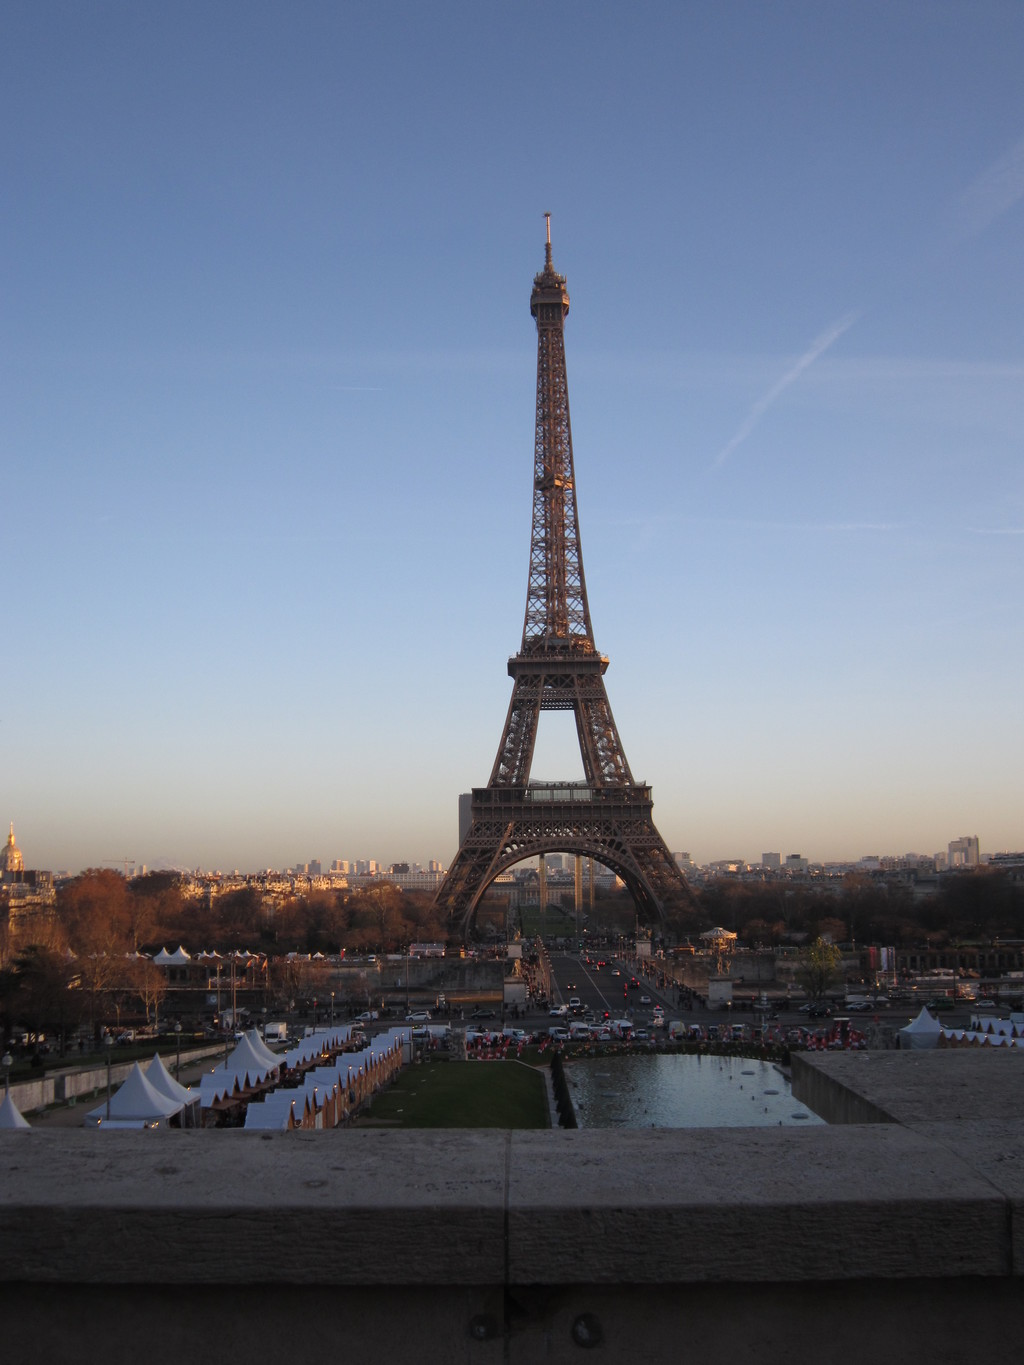 The Best Views of the Eiffel Tower